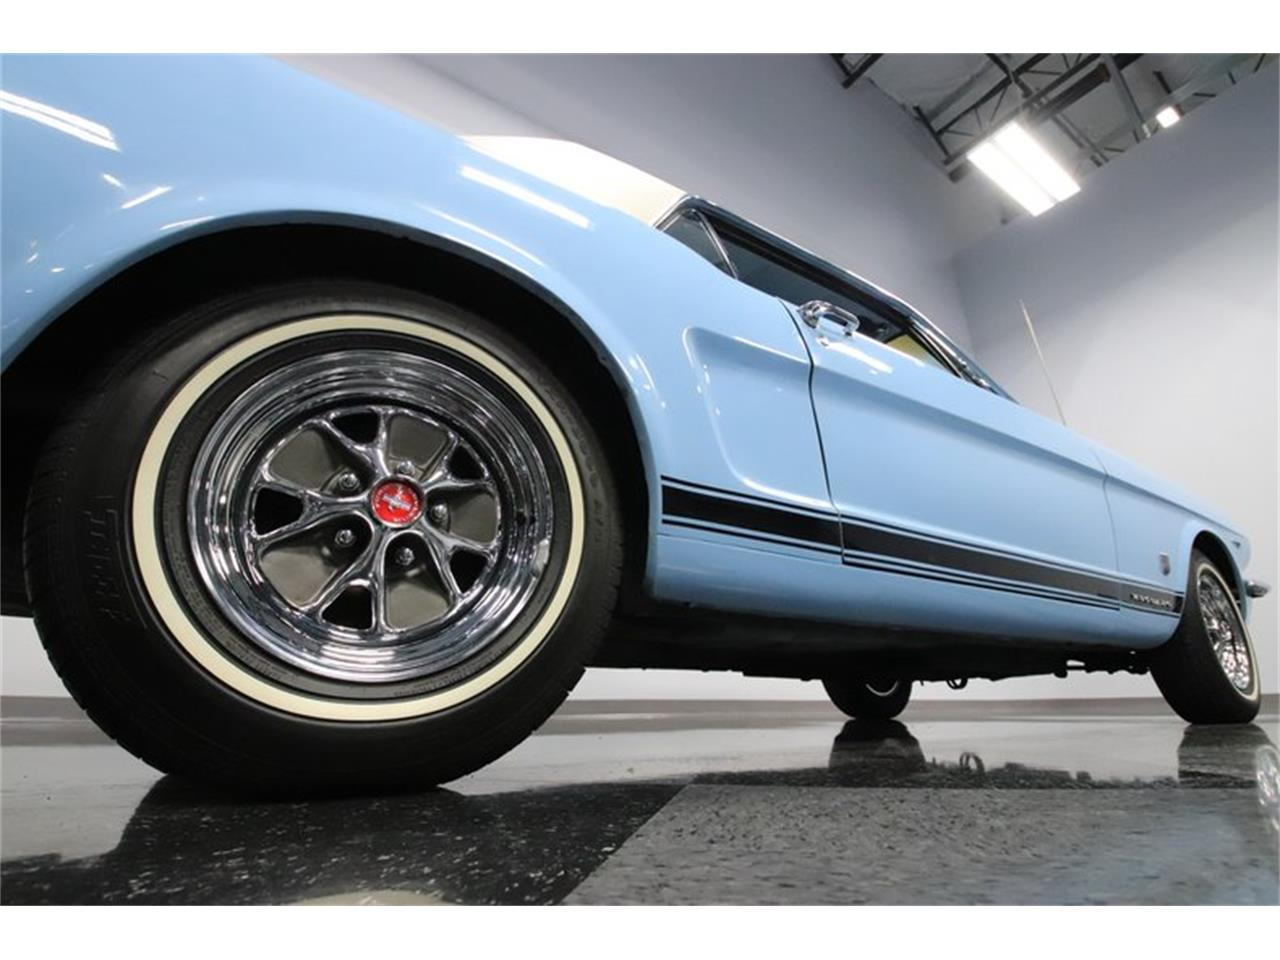 Large Picture of Classic 1965 Ford Mustang GT located in Arizona - $24,995.00 Offered by Streetside Classics - Phoenix - MI7M